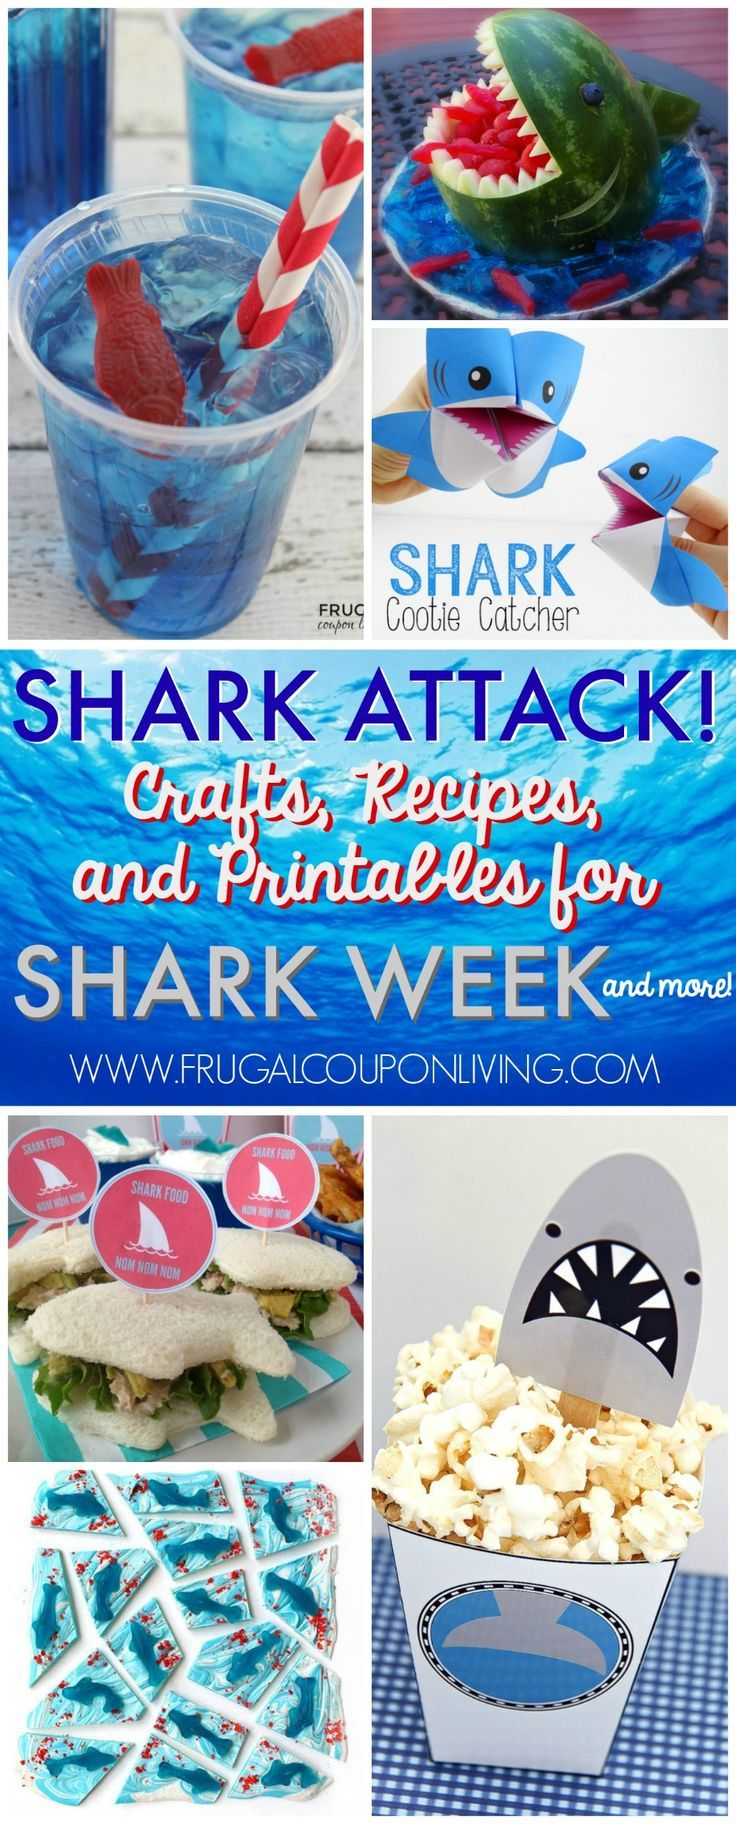 Shark Week Ideas for Kids on Frugal Coupon Living. Are you a fish out of water when it comes to planning the perfect themed party?  For me, it takes days to sometimes search the internet and find some of the best themed content for our special occasion. Shark Week, which starts Sunday, June 26th,  is right around the corner and we wanted to give you some of the Best Shark Week Ideas for Kids. From crafts, to foods to printables, there is a little bit of something for everyone!